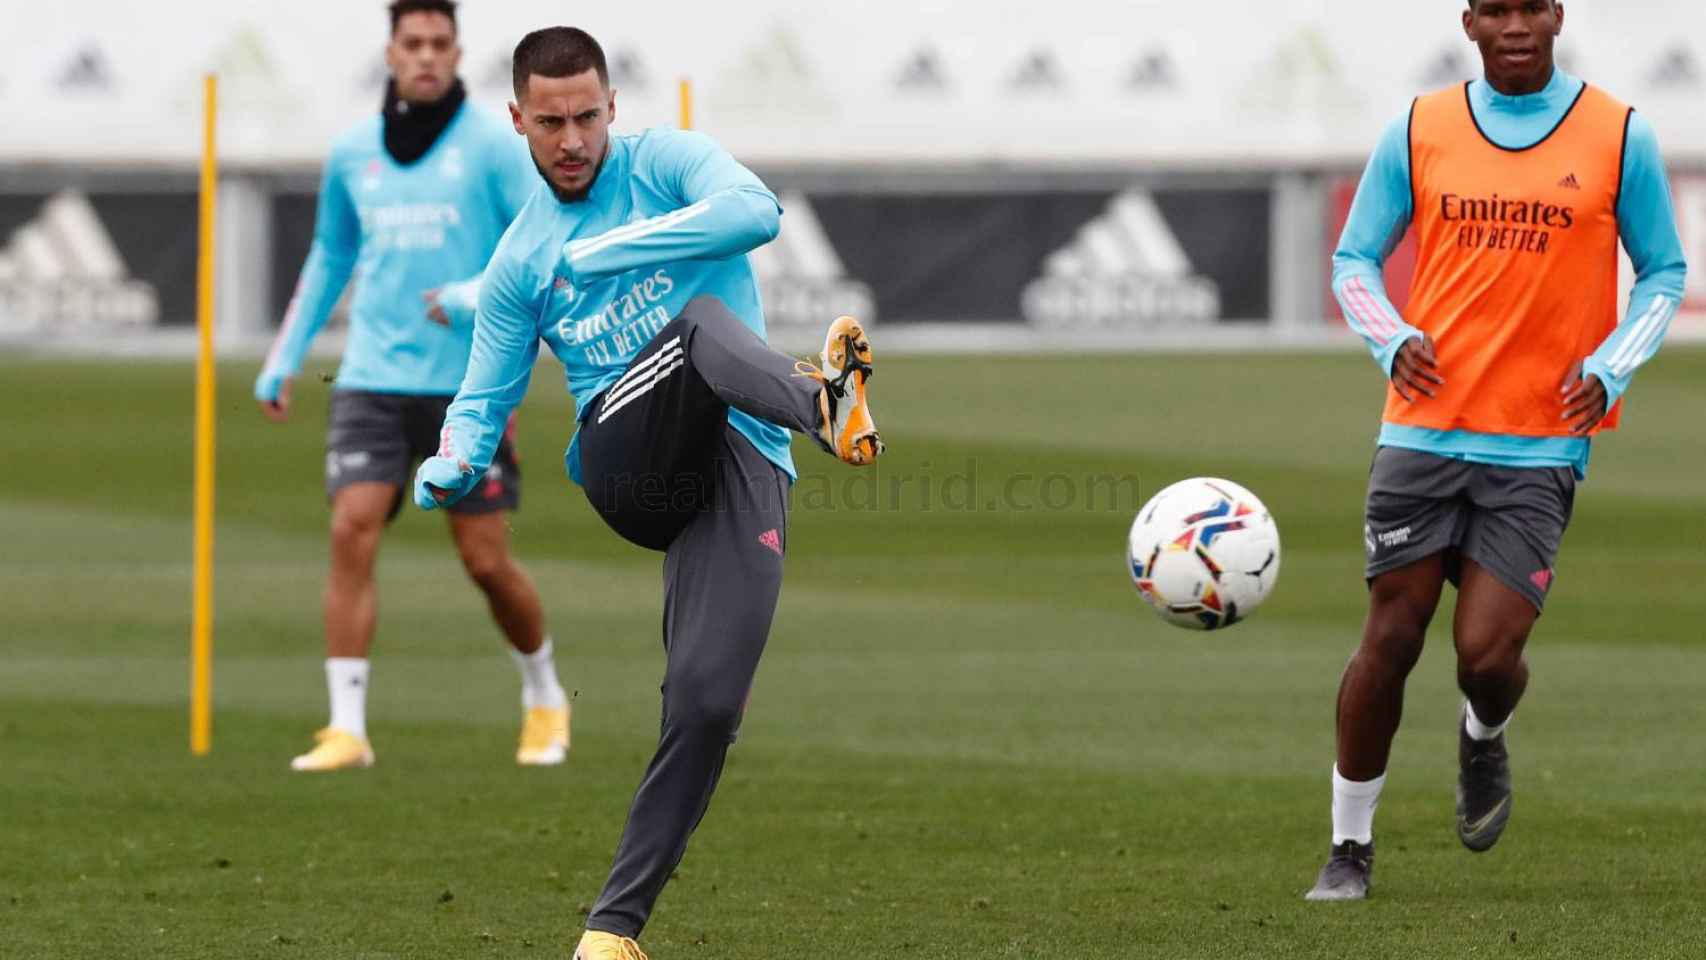 Hazard entrena con el Real Madrid